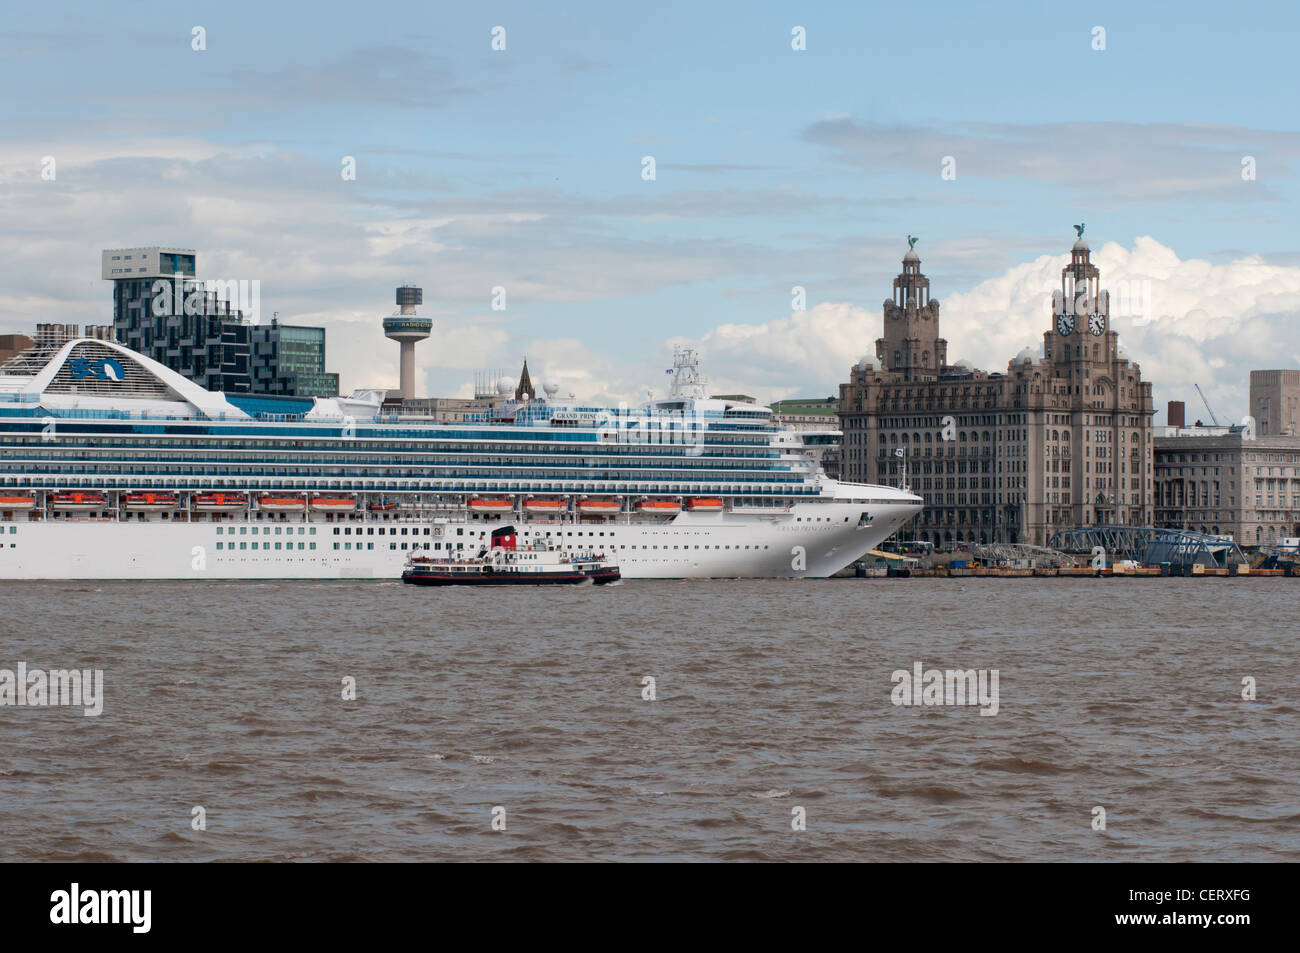 Cruise Liner berthed on the River Mersey in Liverpool Uk - Stock Image